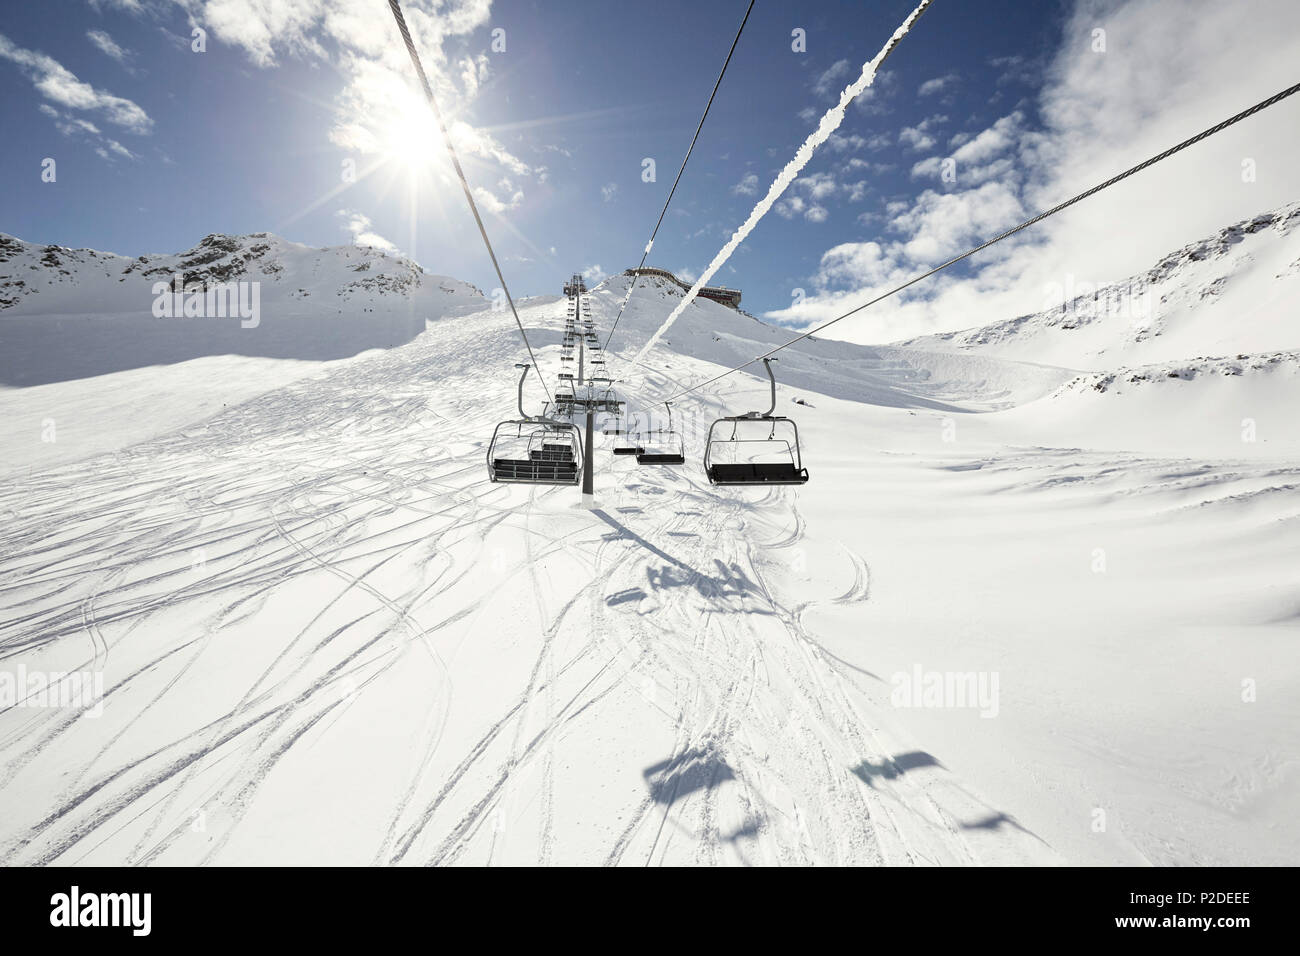 Chair lift and deep powder ski resort, Schnalstaler Glacier, South Tirol, Italy - Stock Image